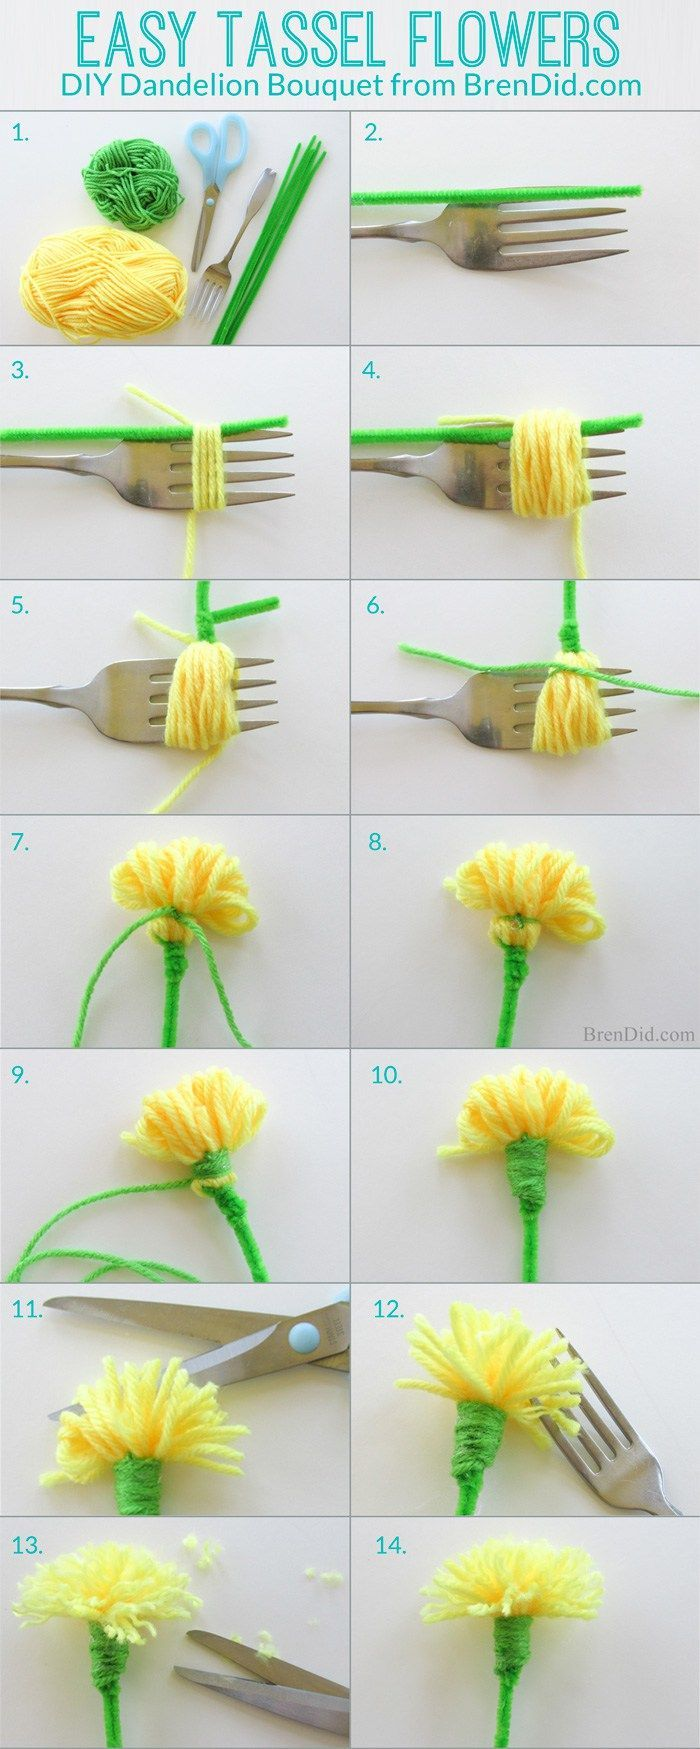 How to make tassel flowers - Make an easy DIY dandelion bouquest with yarn and pipe cleaners to delight someone you love